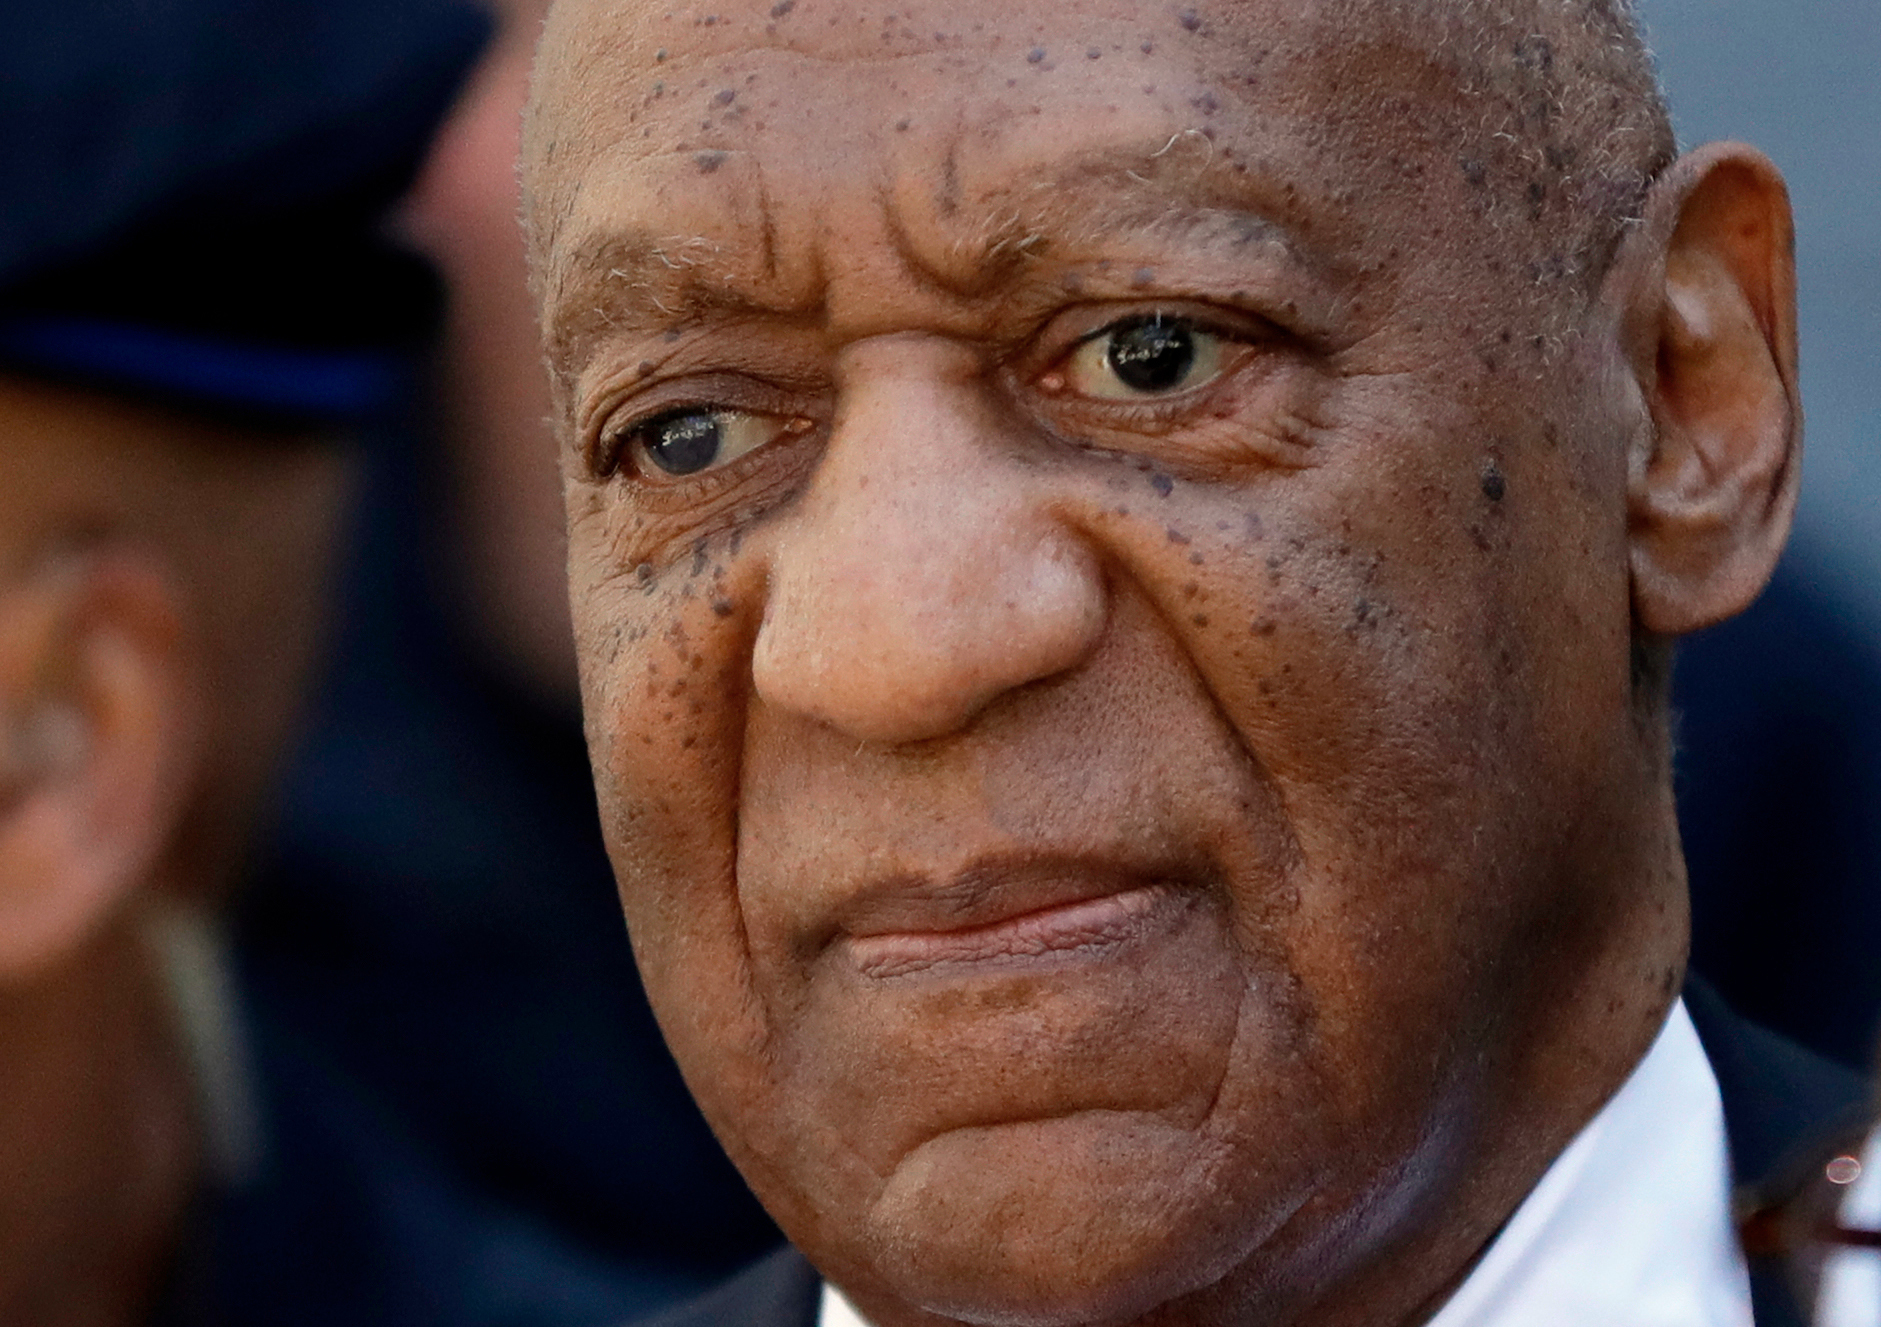 Actor and comedian Bill Cosby departs the courthouse after he was found guilty in his sexual assault retrial